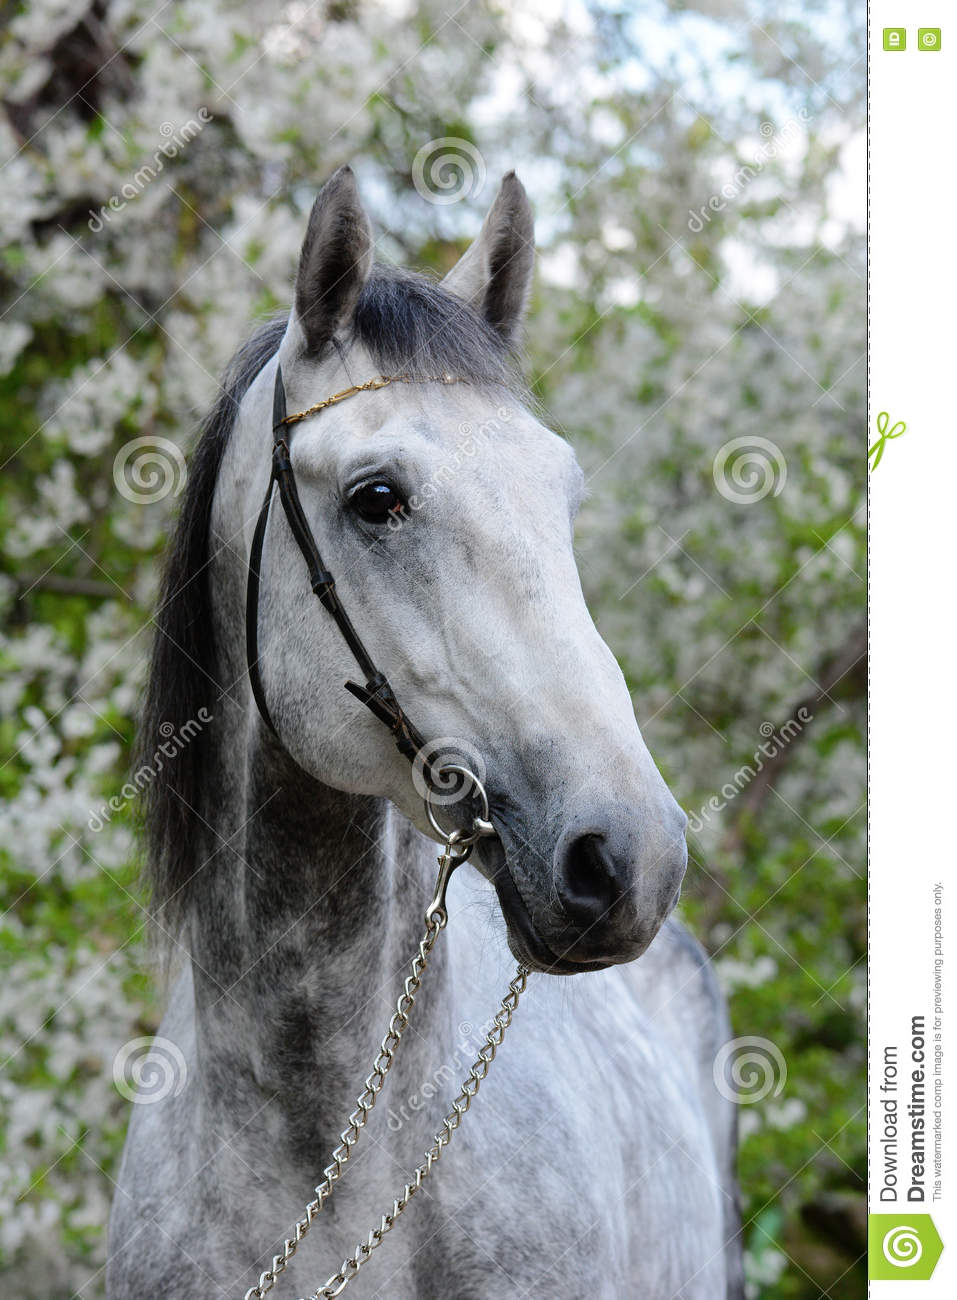 Portrait of a gray orlov trotter breed horse